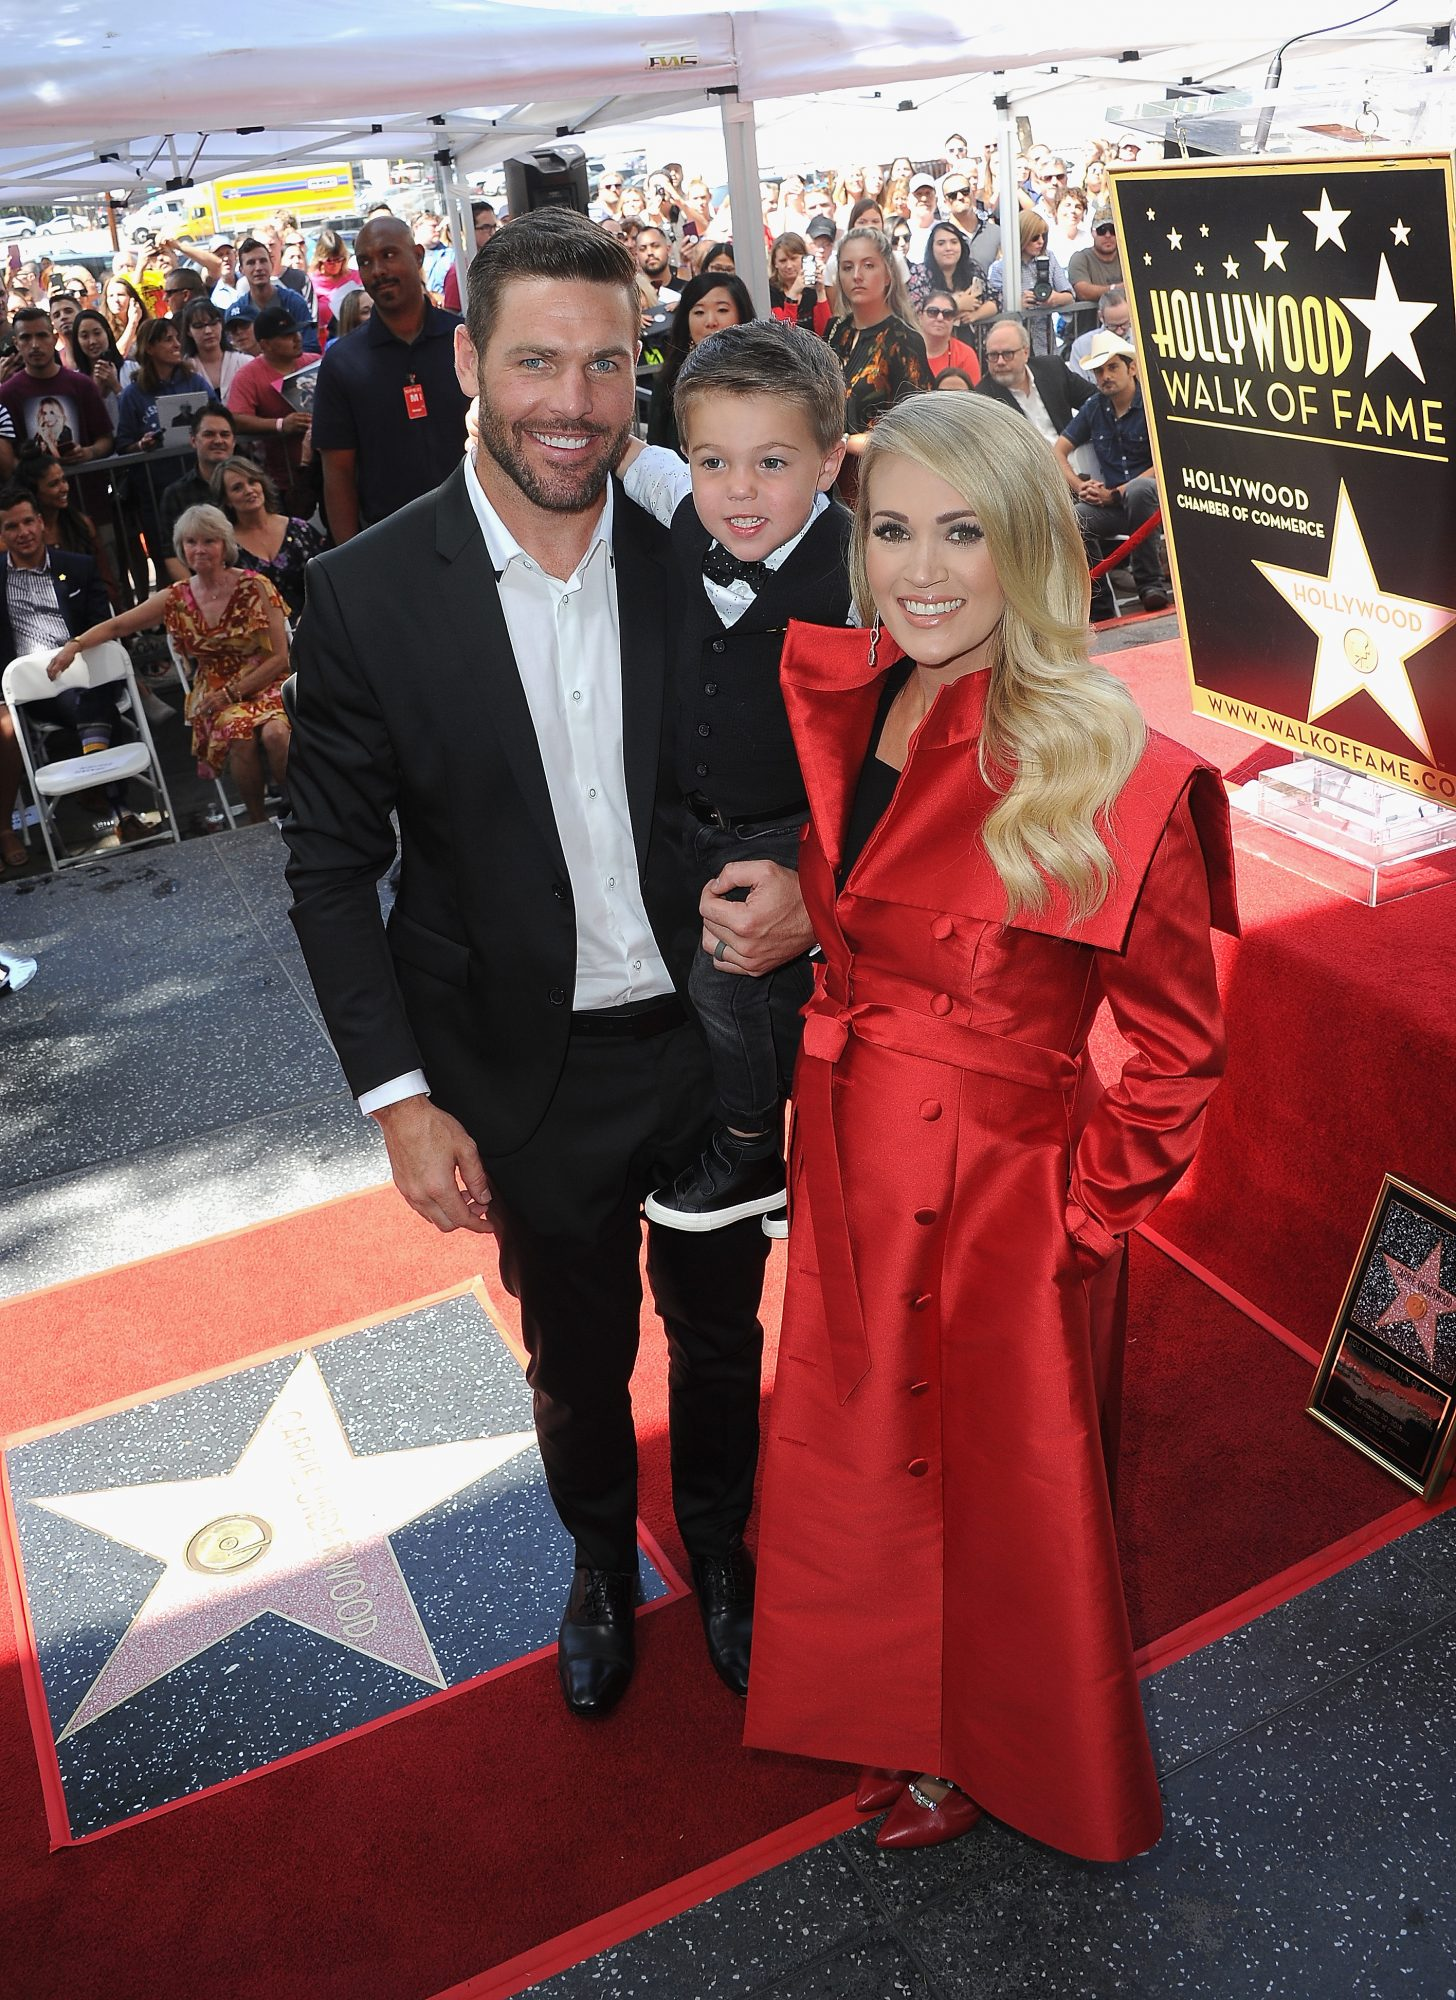 Carrie Underwood Honored With Star On The Hollywood Walk Of Fame